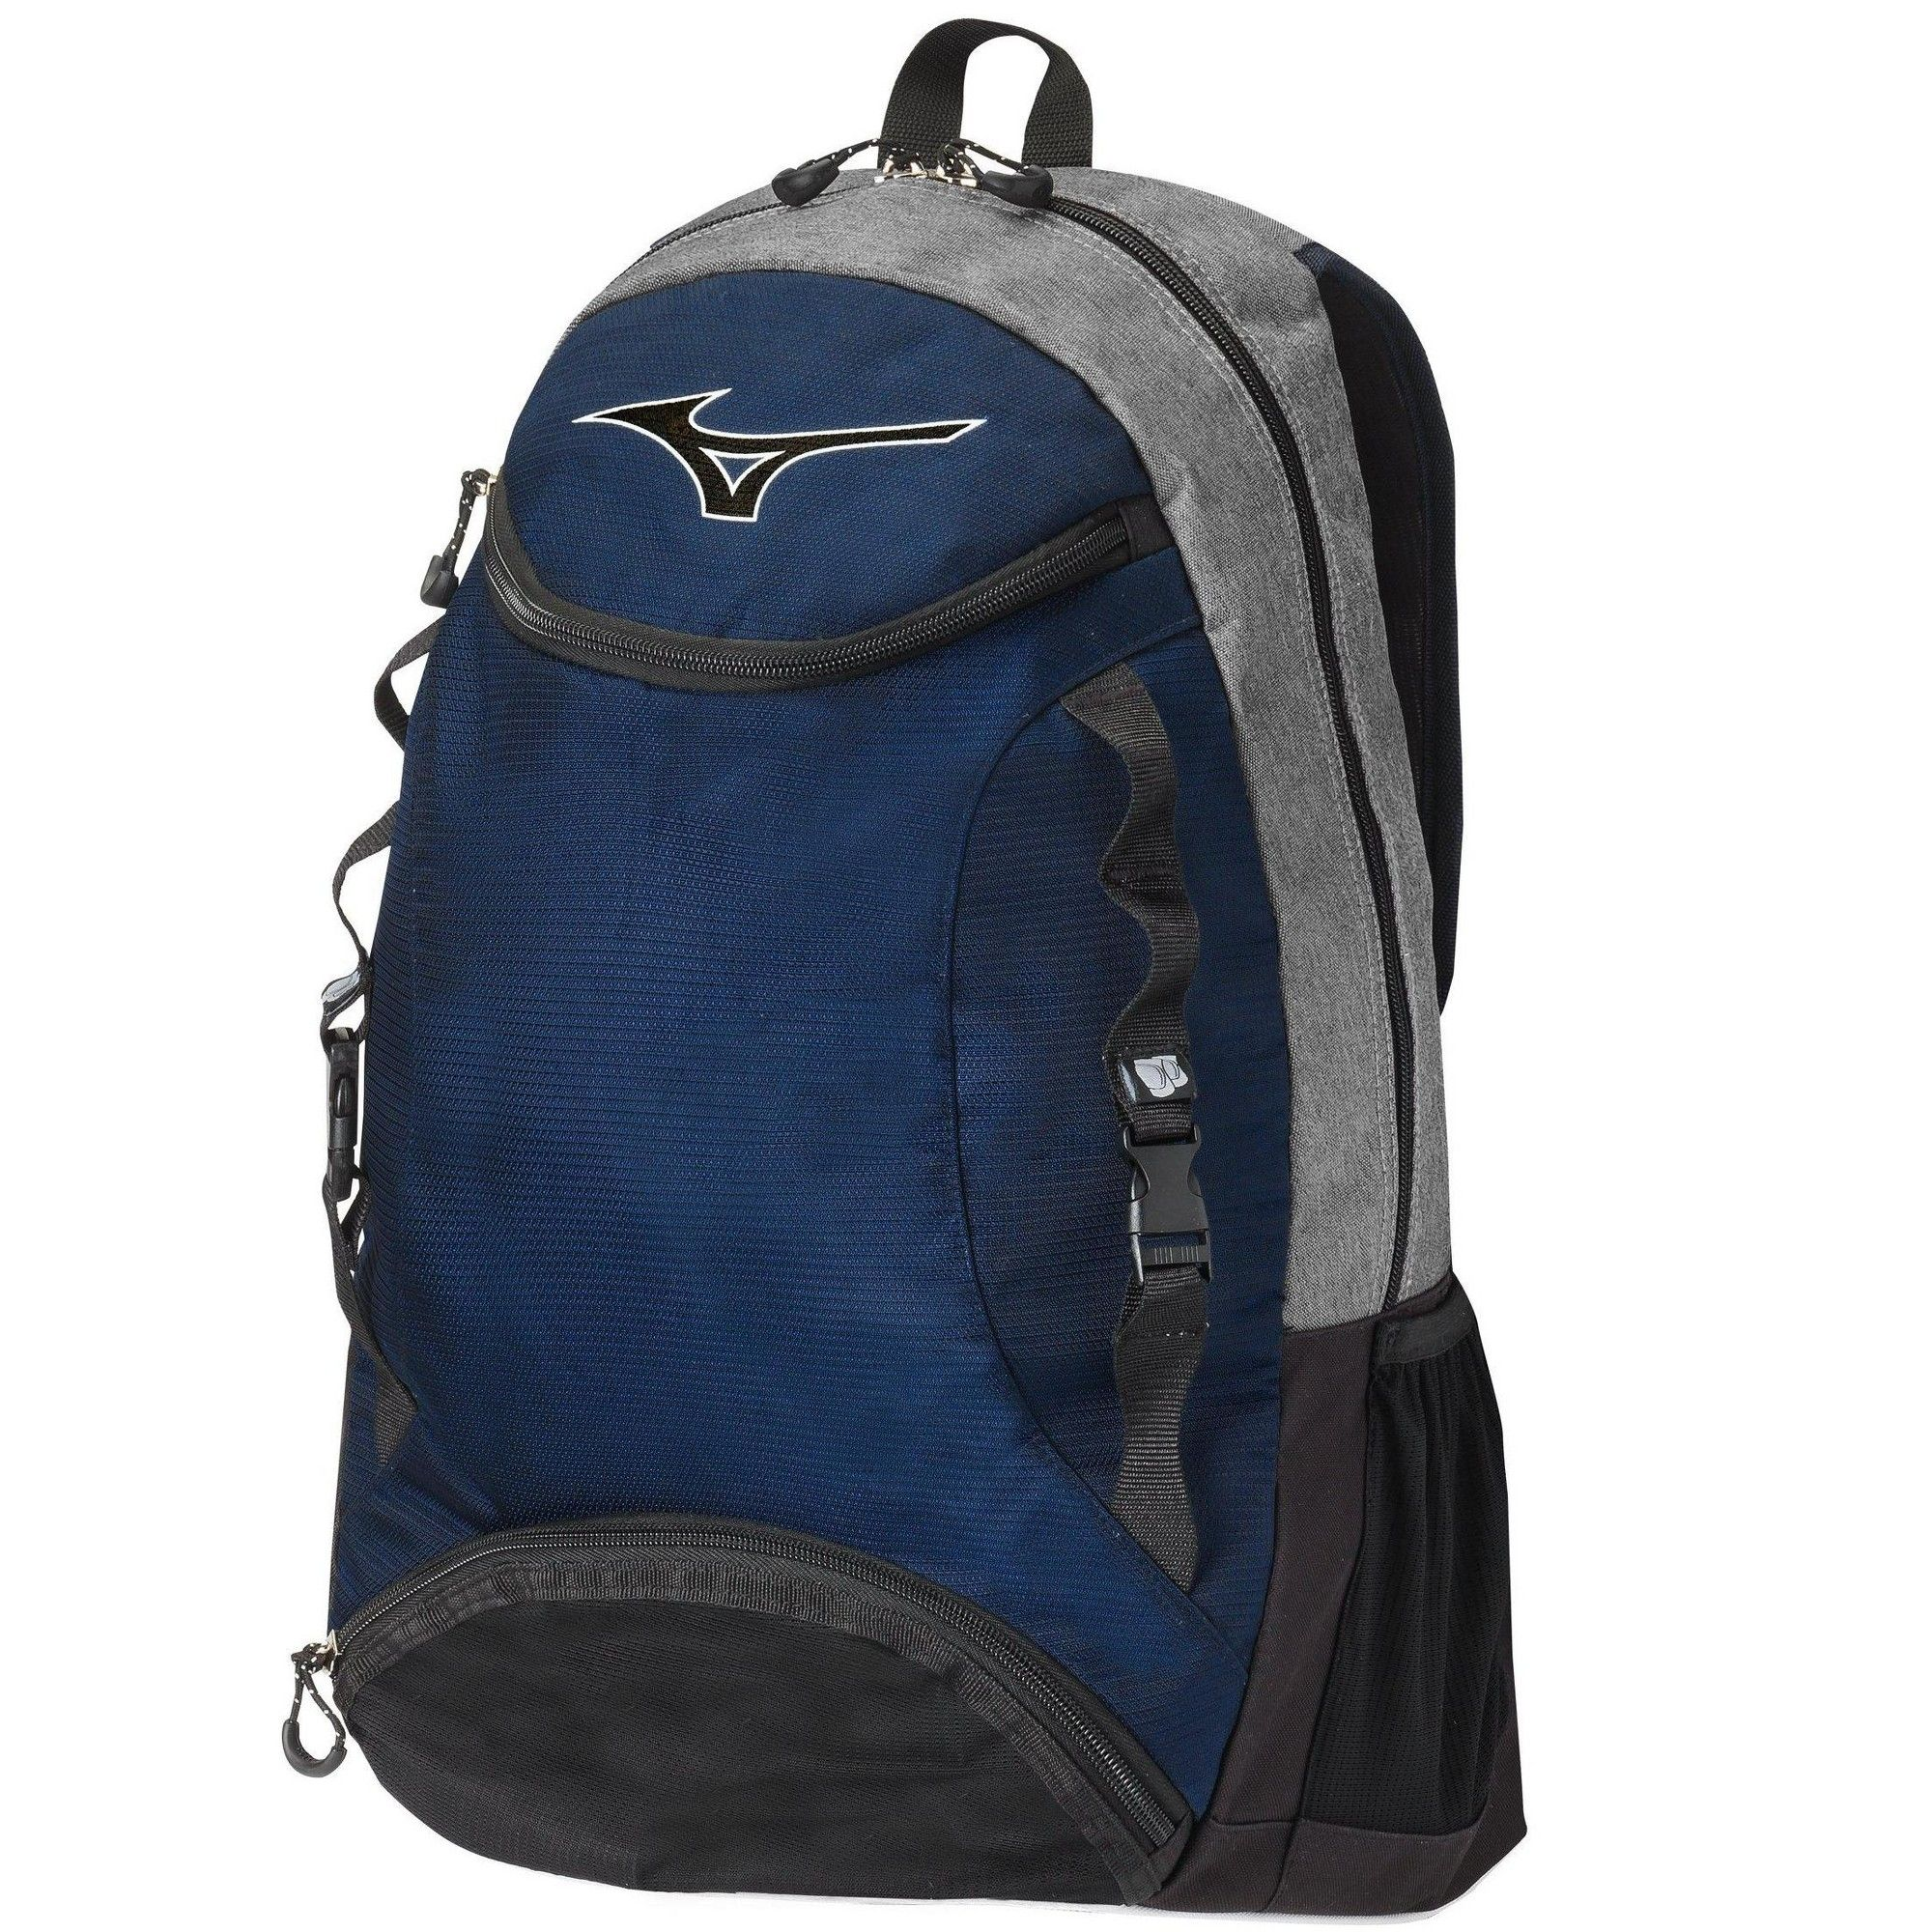 Mizuno Lightning Volleyball Backpack Size No Size In Color Grey Navy 9151 Backpacks Casual Backpack Backpack Reviews